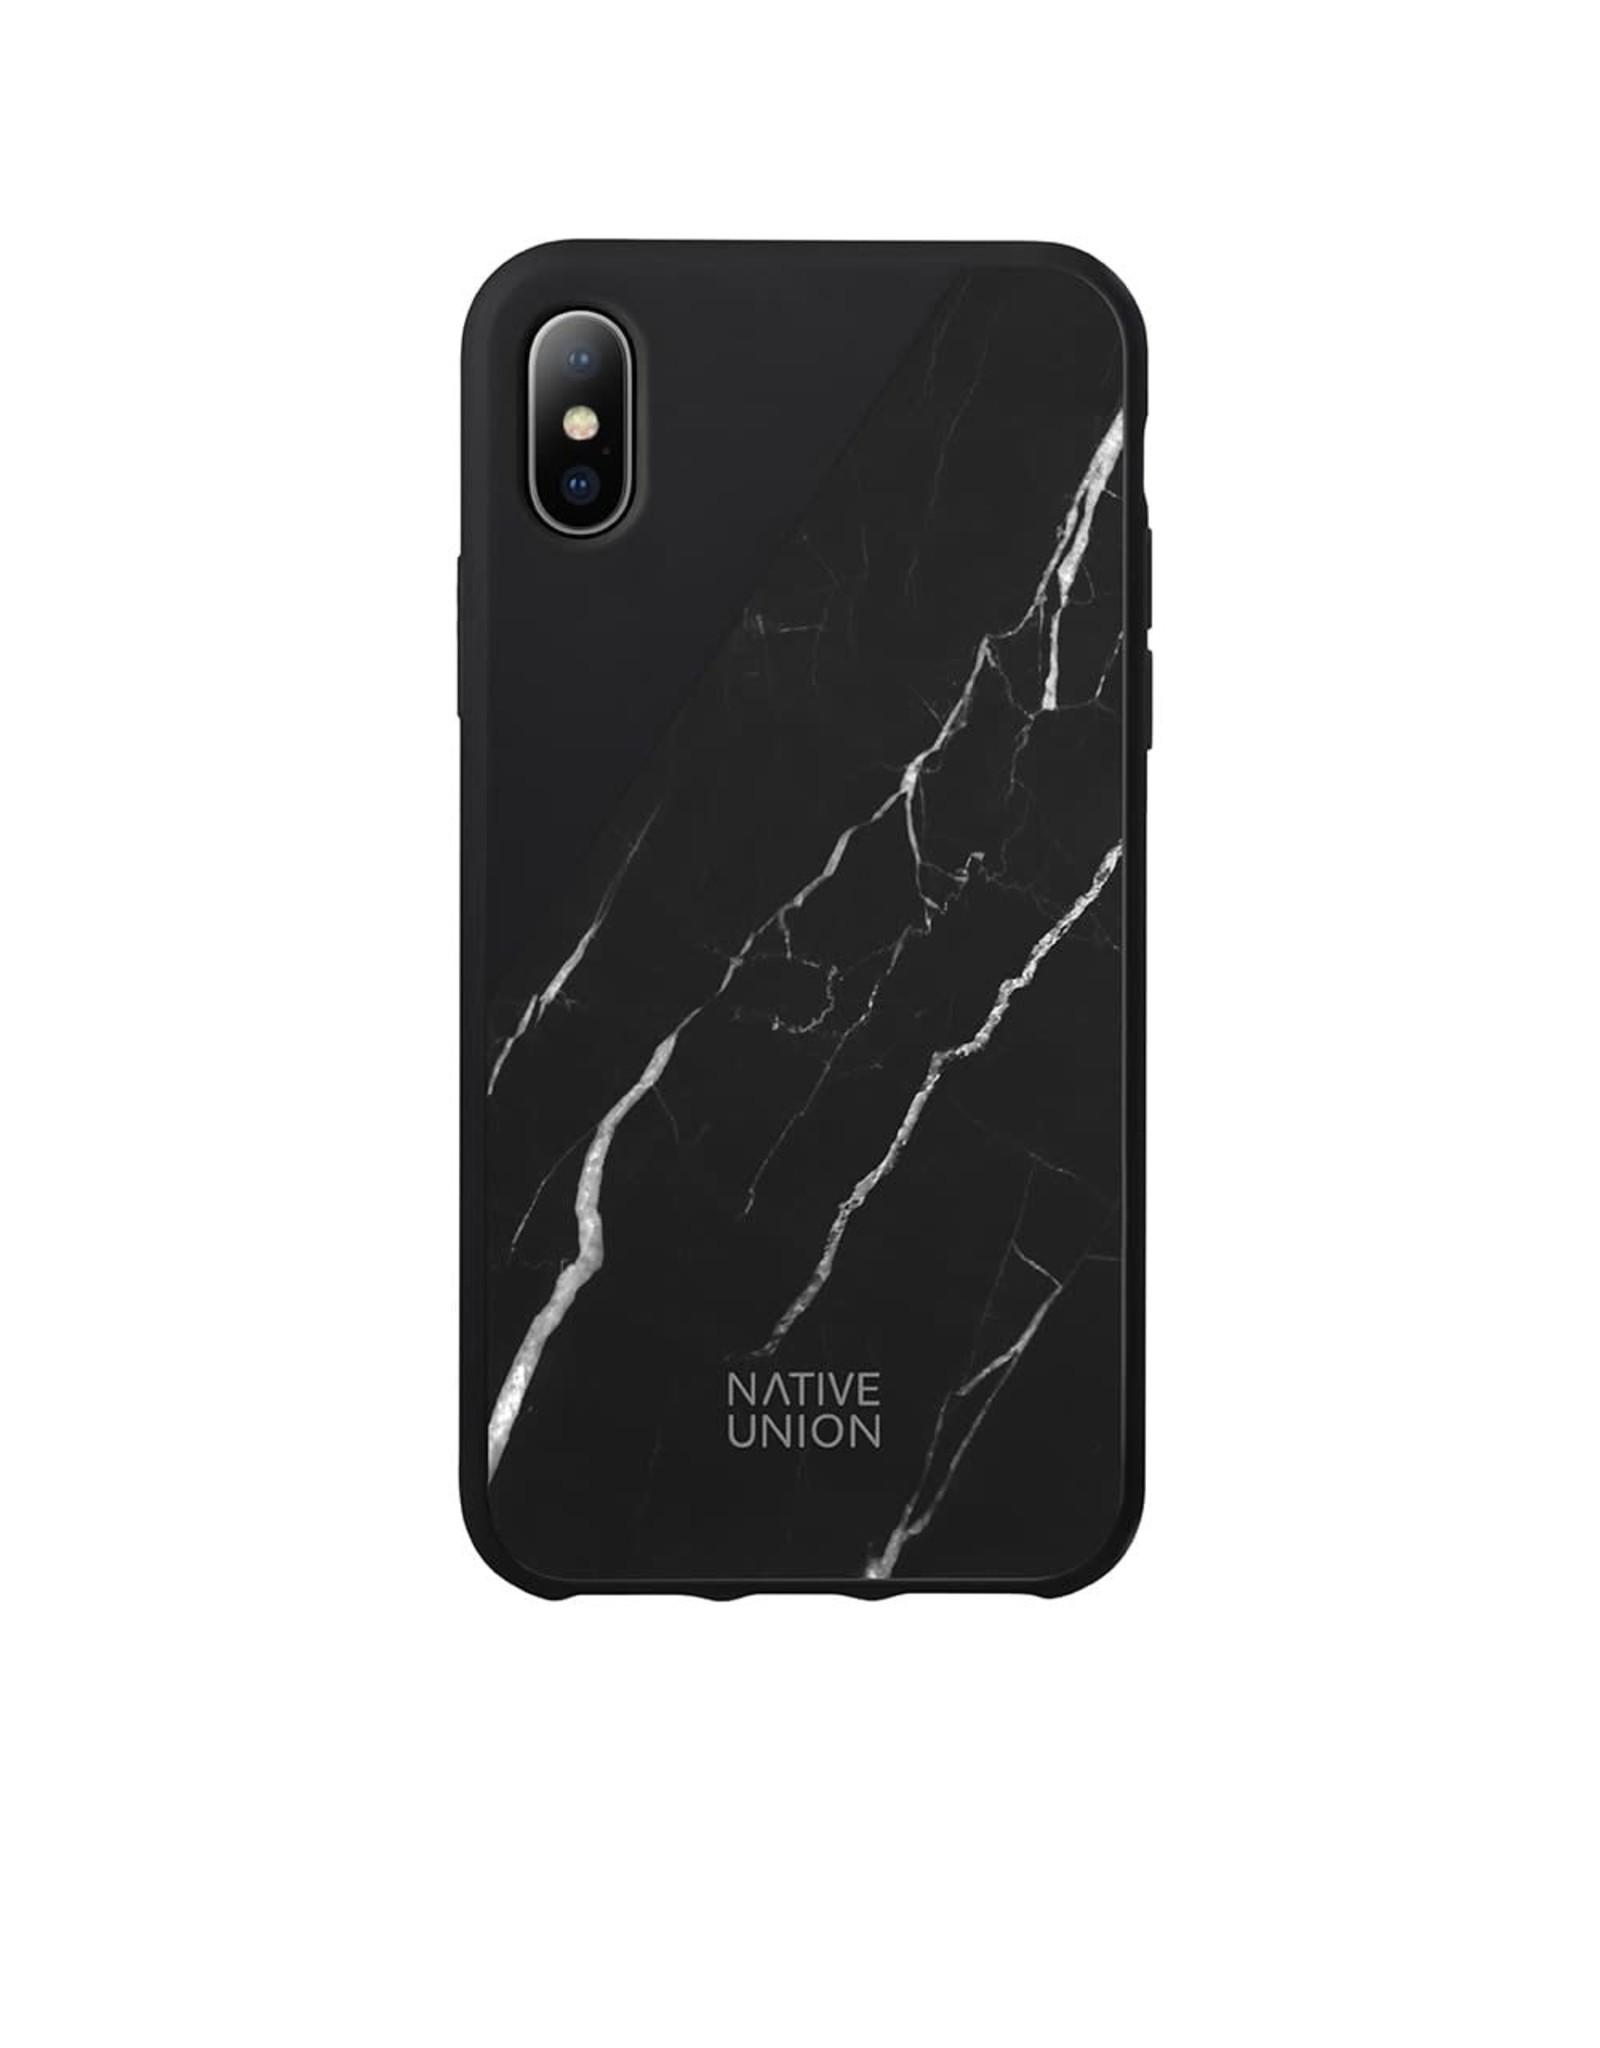 Native Union Native Union iPhone X Clic Marble - Black EOL